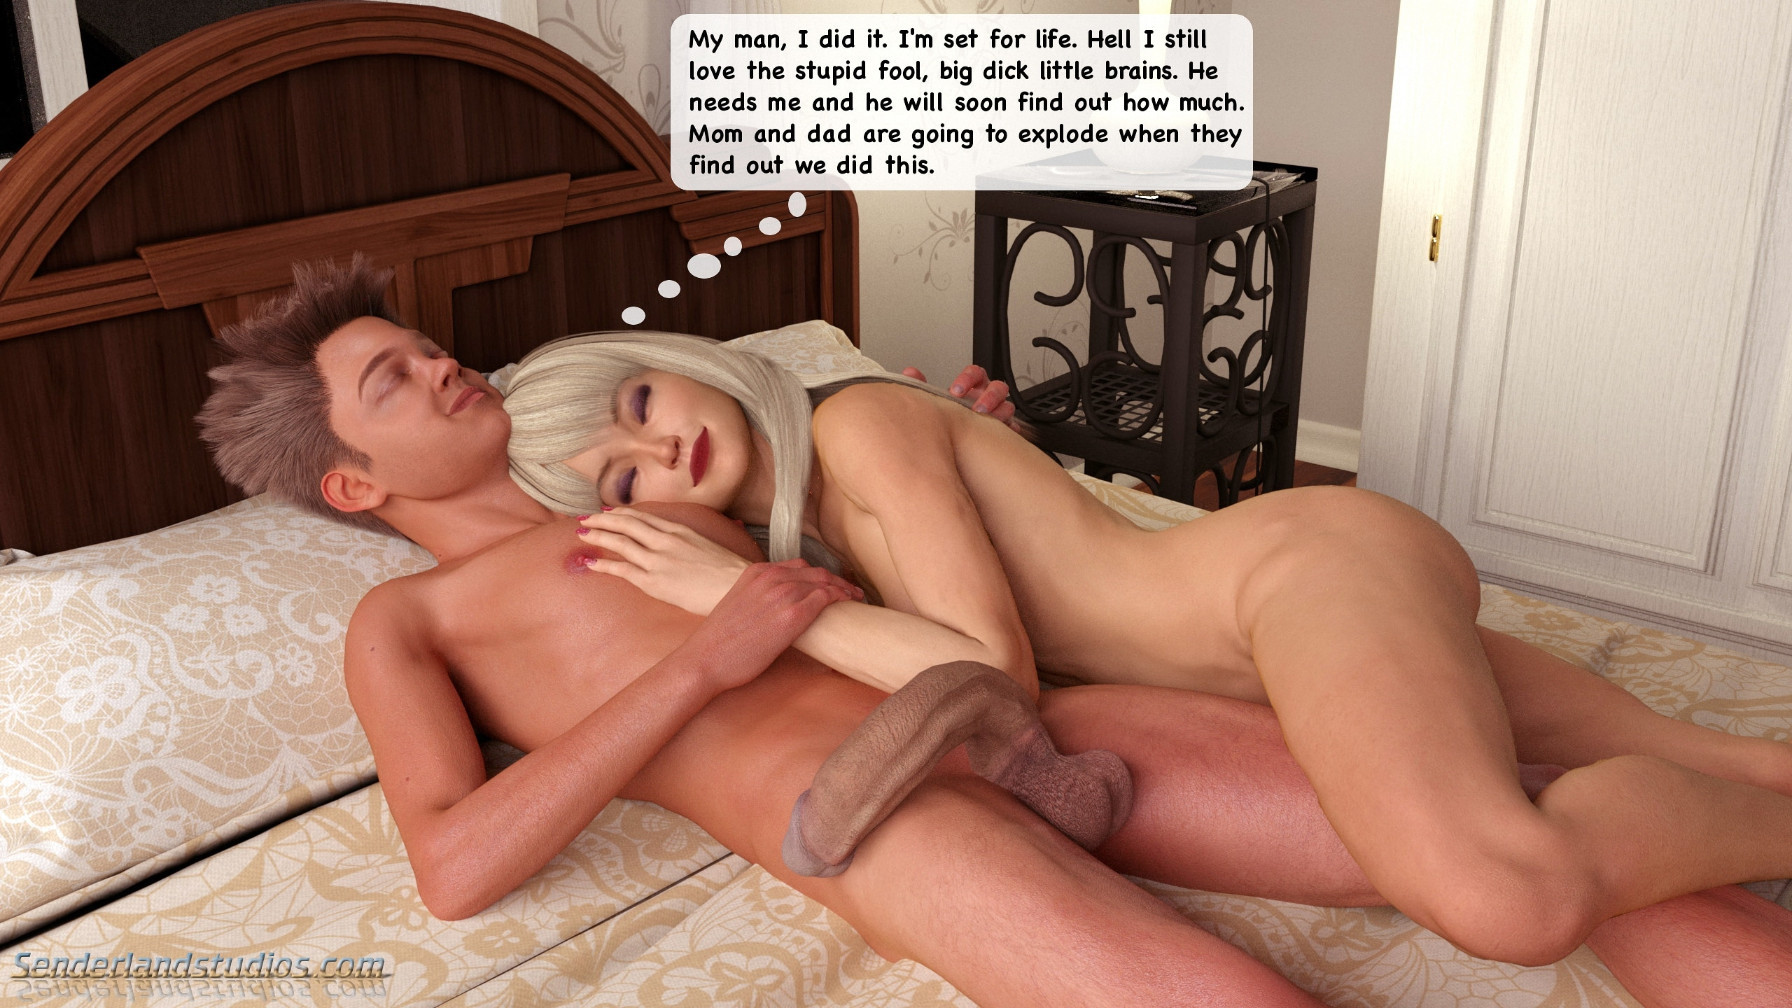 And Sister Porn Hot Brother#6